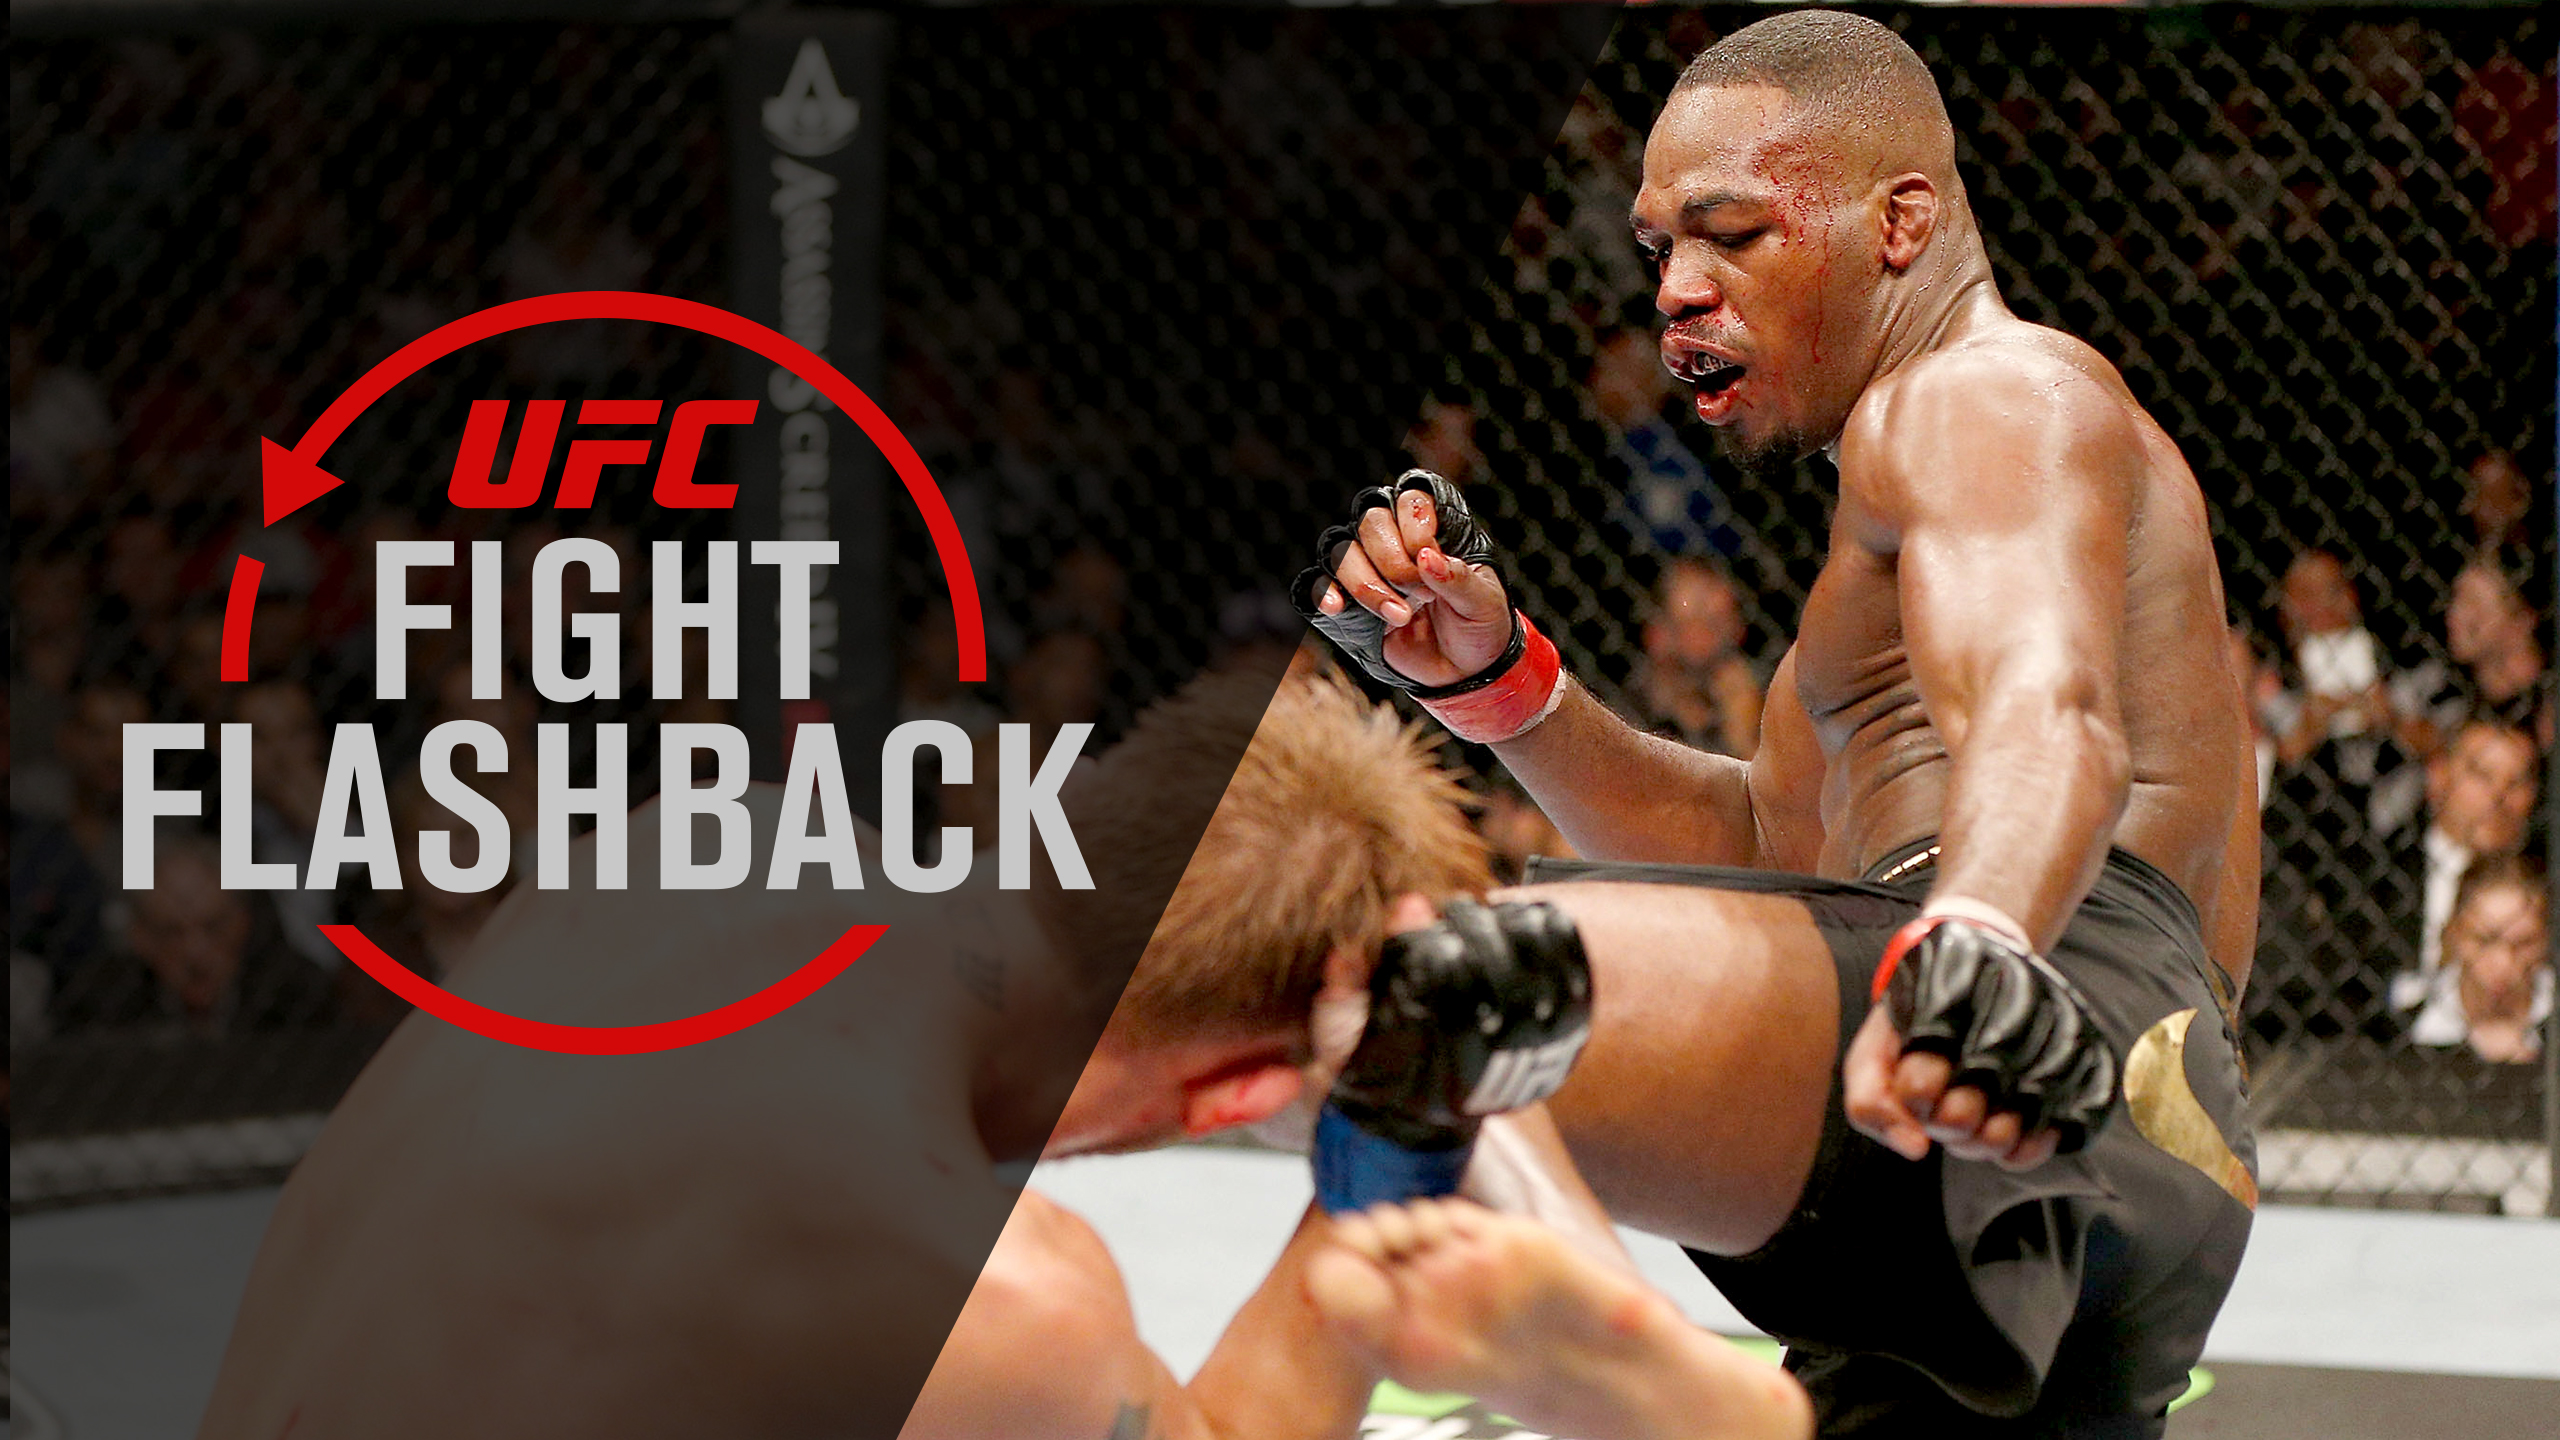 UFC Fight Flashback: Jon Jones vs. Alexander Gustafsson 1